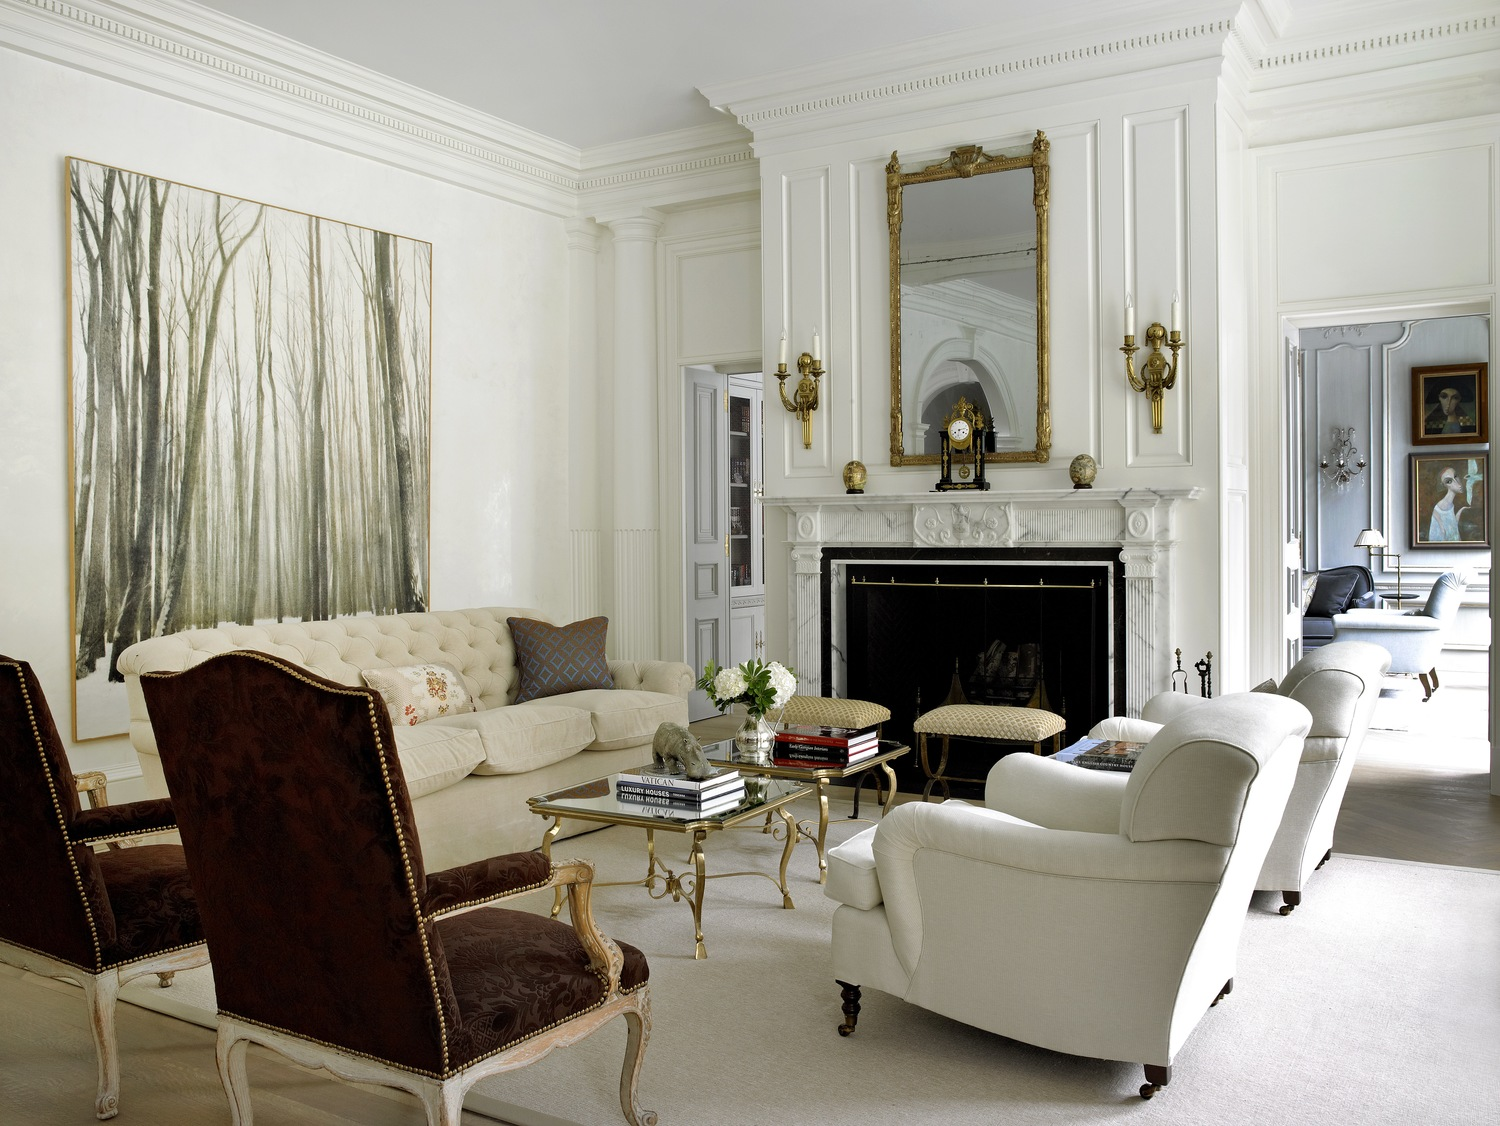 Classic Style Furniture fro Practical Chic Interiors. White decorated room with gild-plated elements